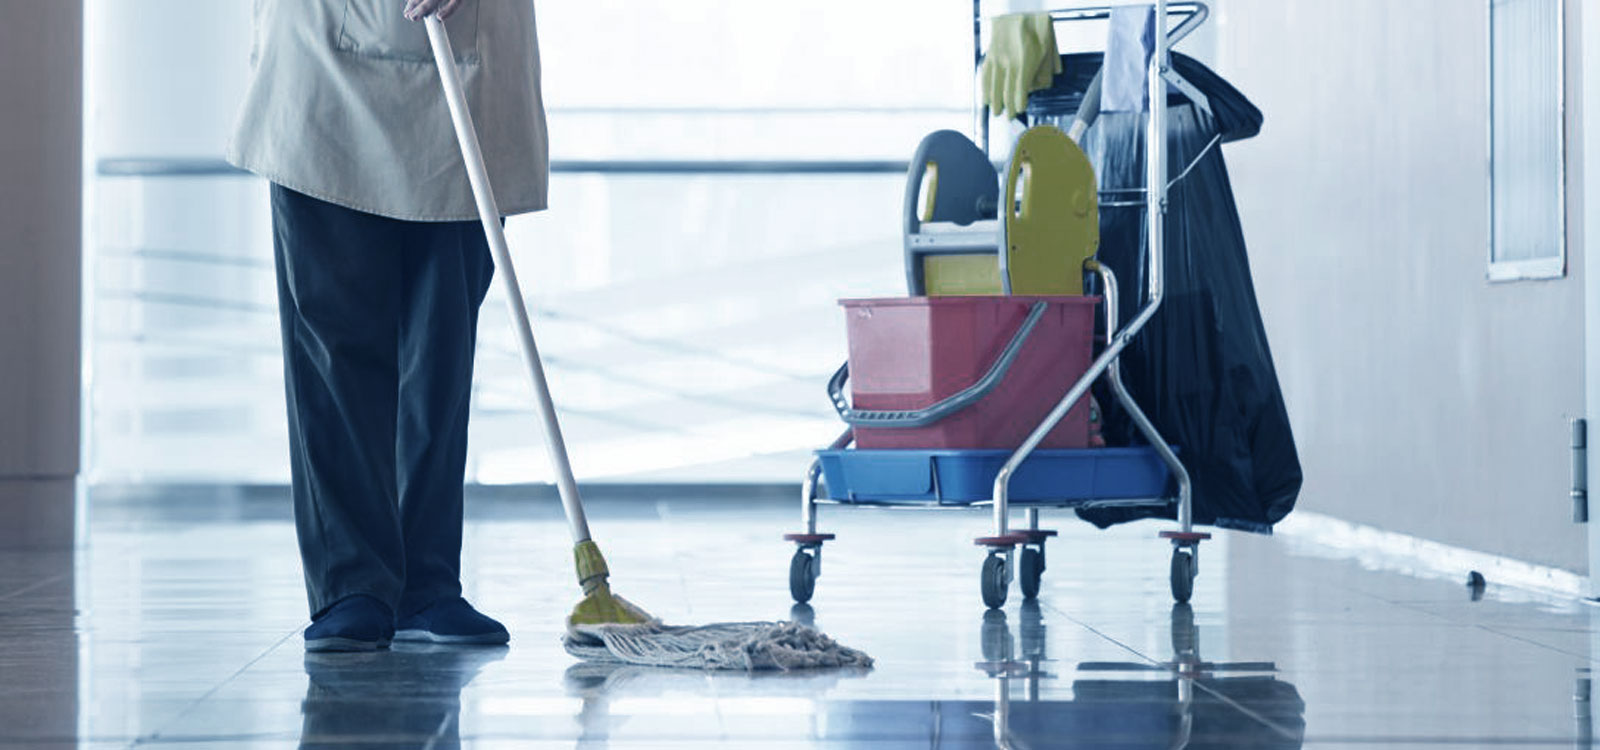 Floor-Carpet-Cleaning-Services.jpg